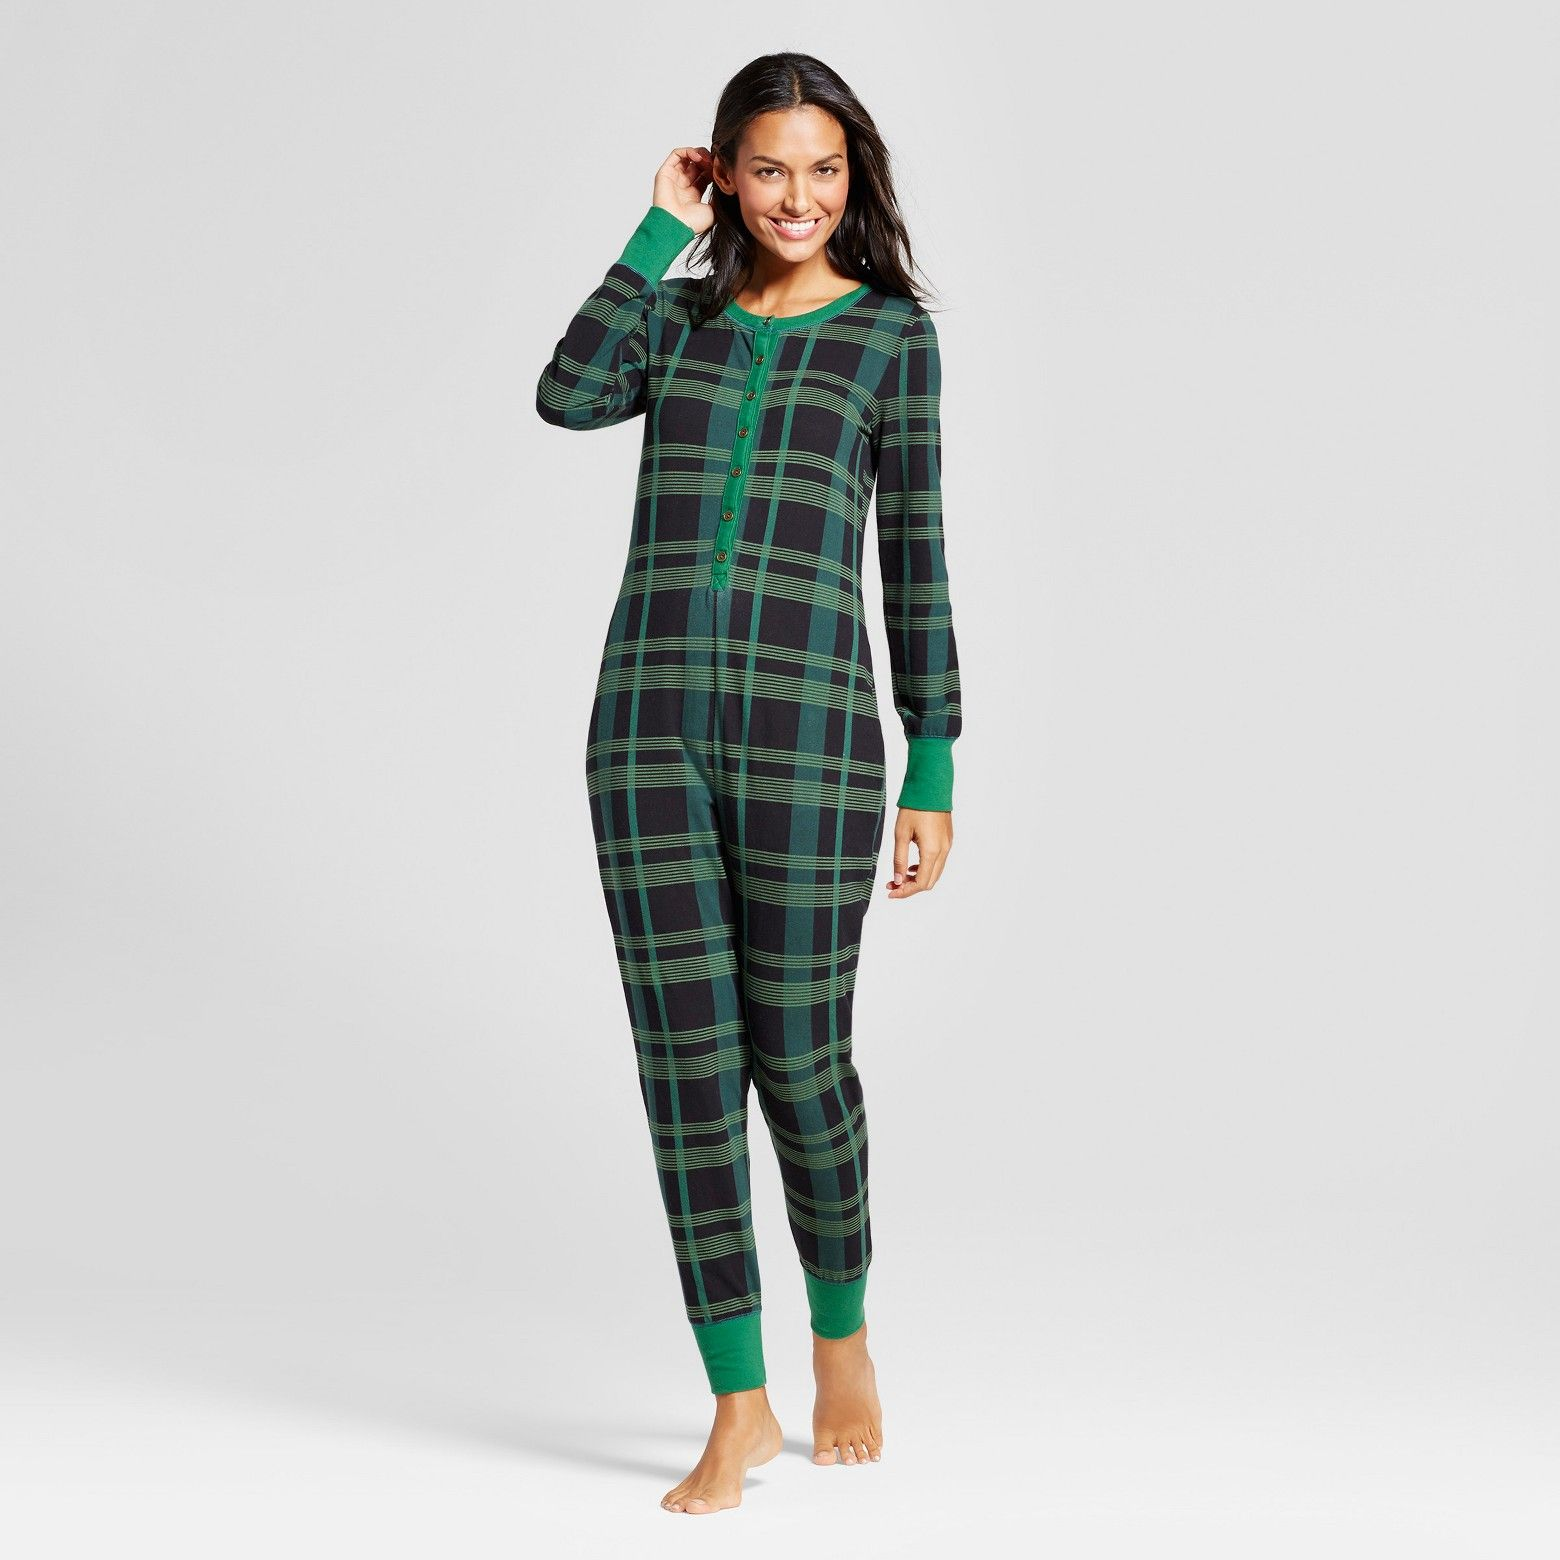 You'll love snuggling up in this Green Plaid Pajama